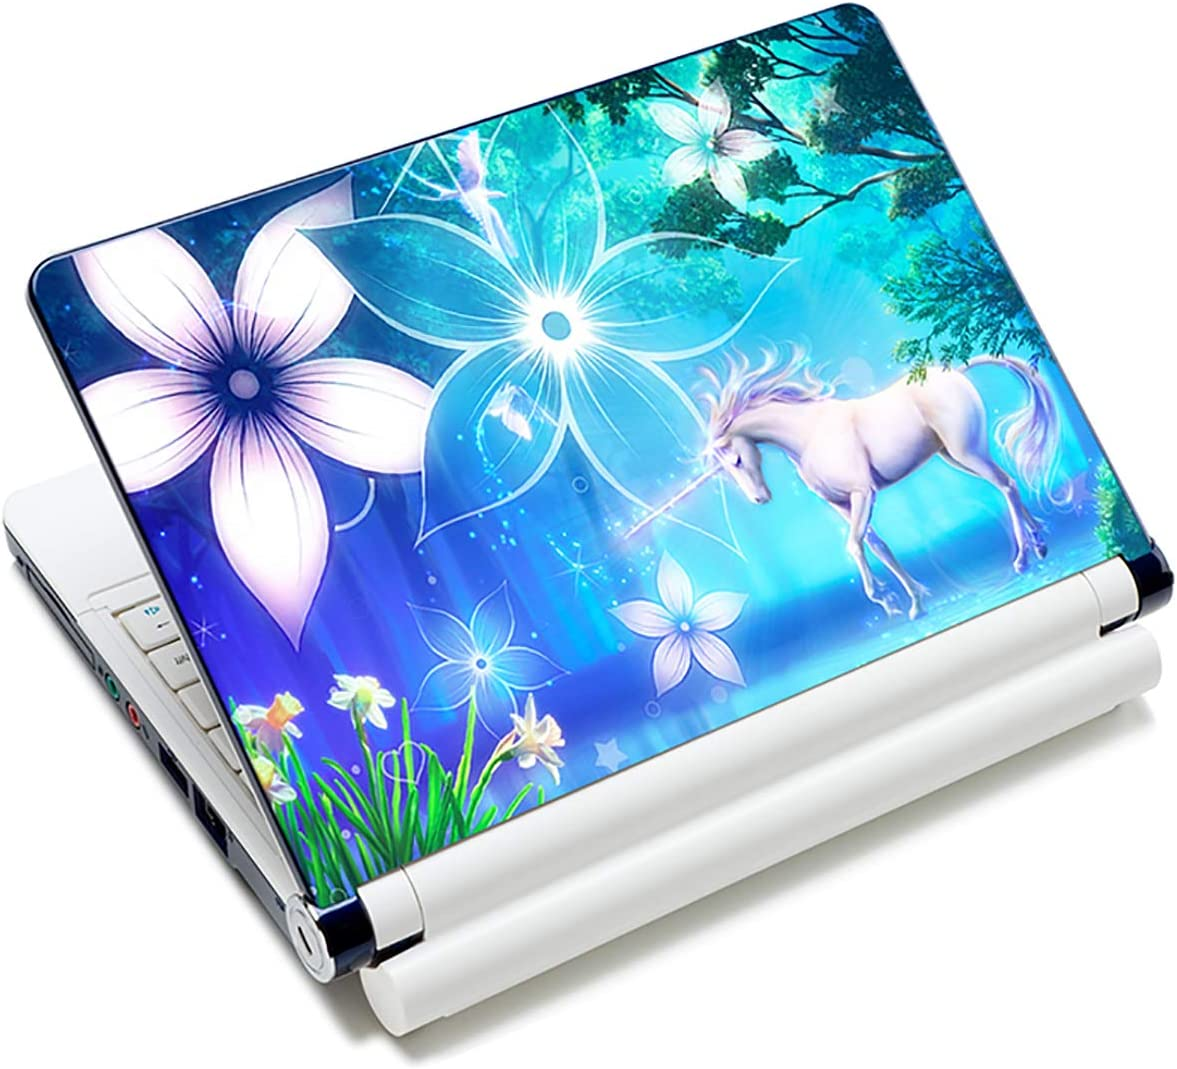 """Laptop Skin Sticker Decal,12"""" 13"""" 13.3"""" 14"""" 15"""" 15.4"""" 15.6"""" Laptop Skin Sticker Protector Cover for Toshiba Hp Samsung Dell Apple Acer Leonovo Sony Asus Laptop Notebook (Cute Unicorn)"""